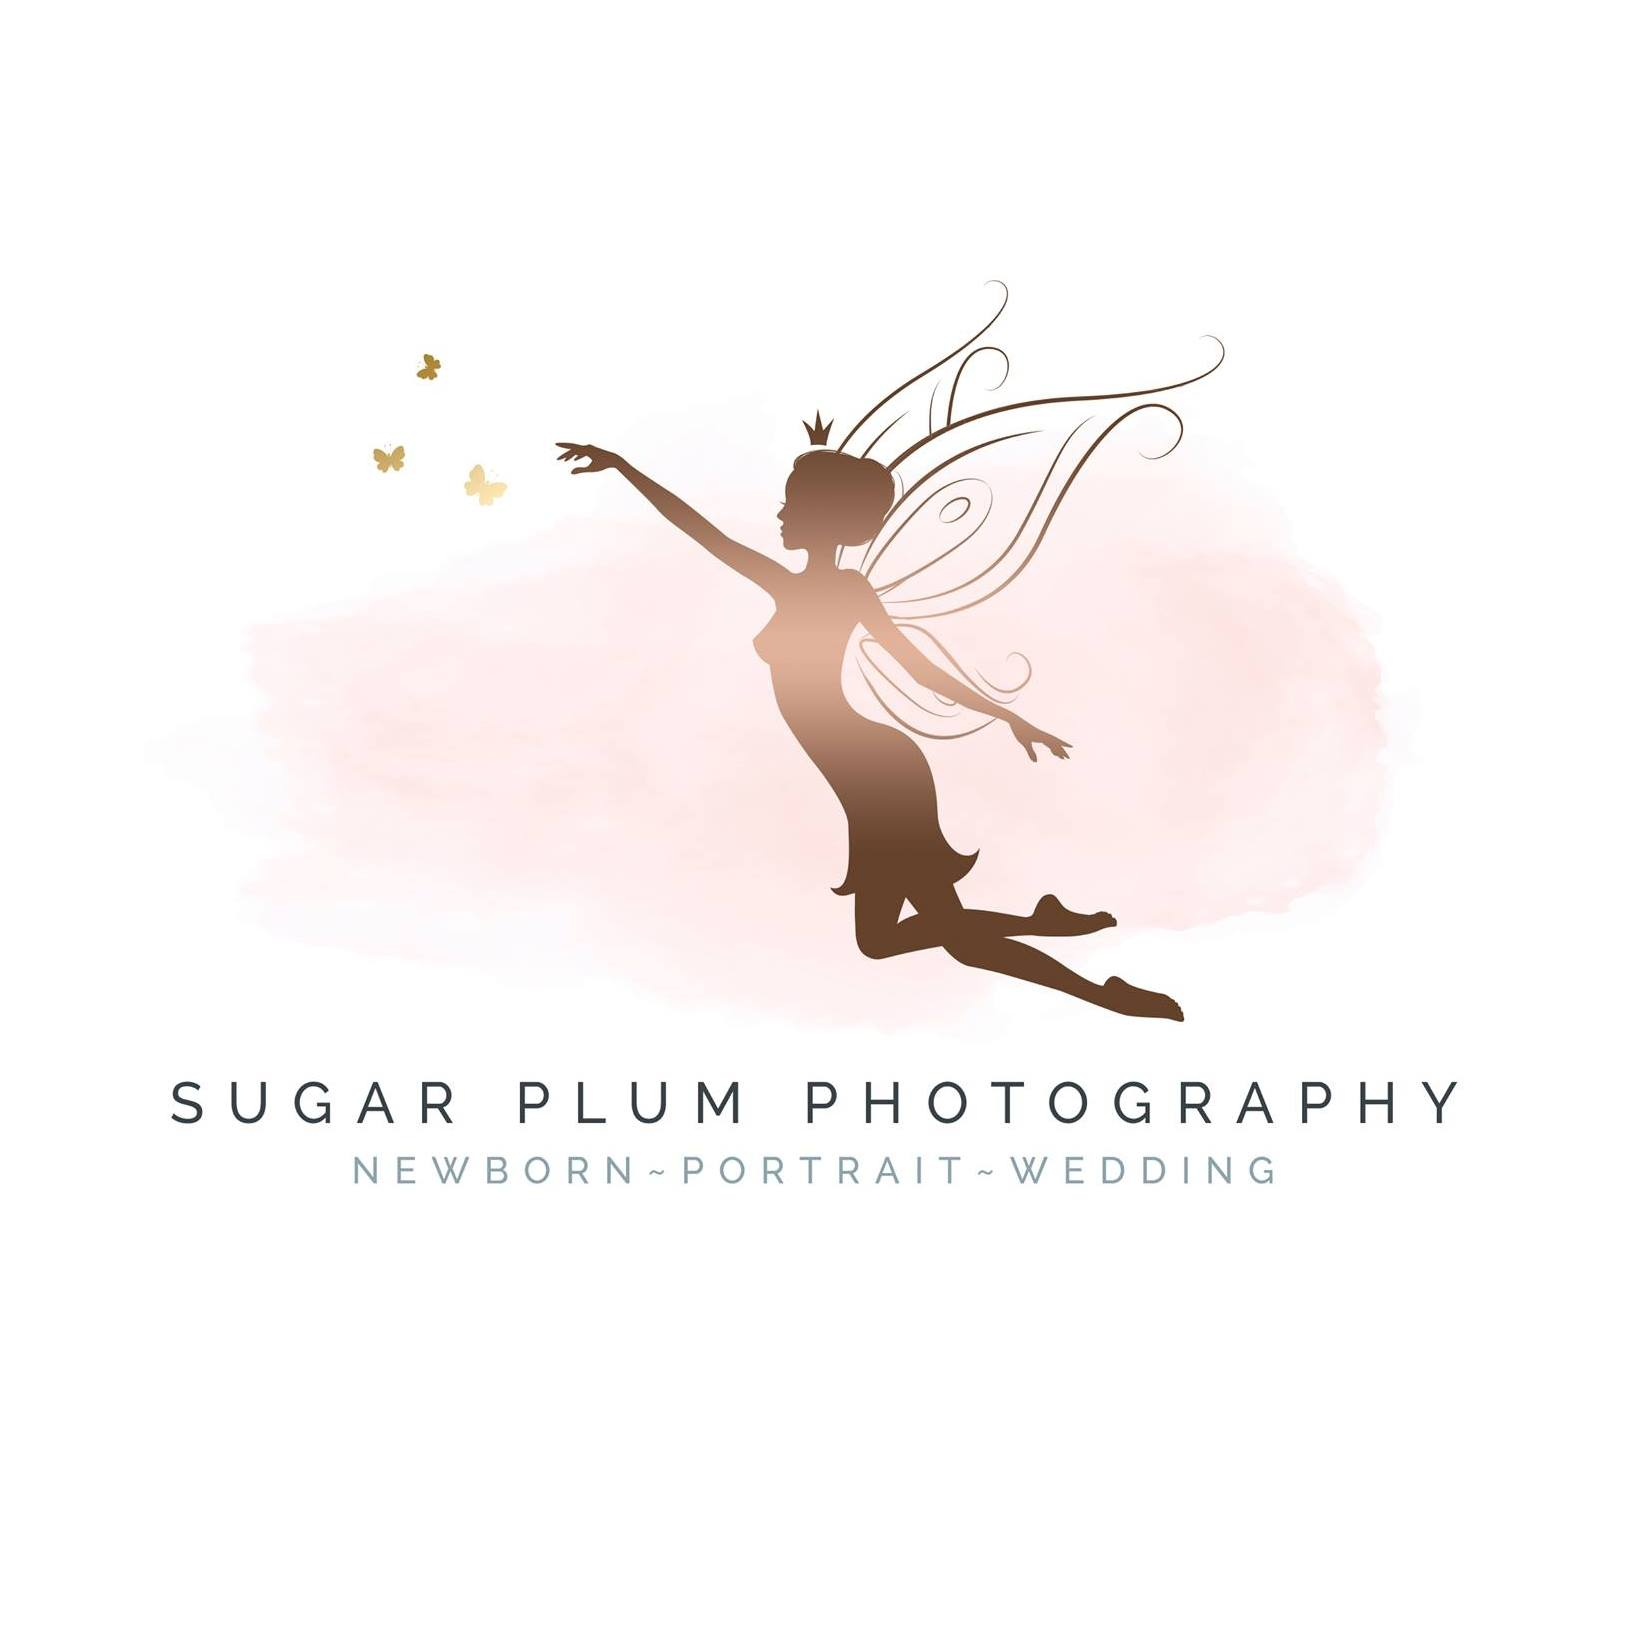 Sugar Plum Photography